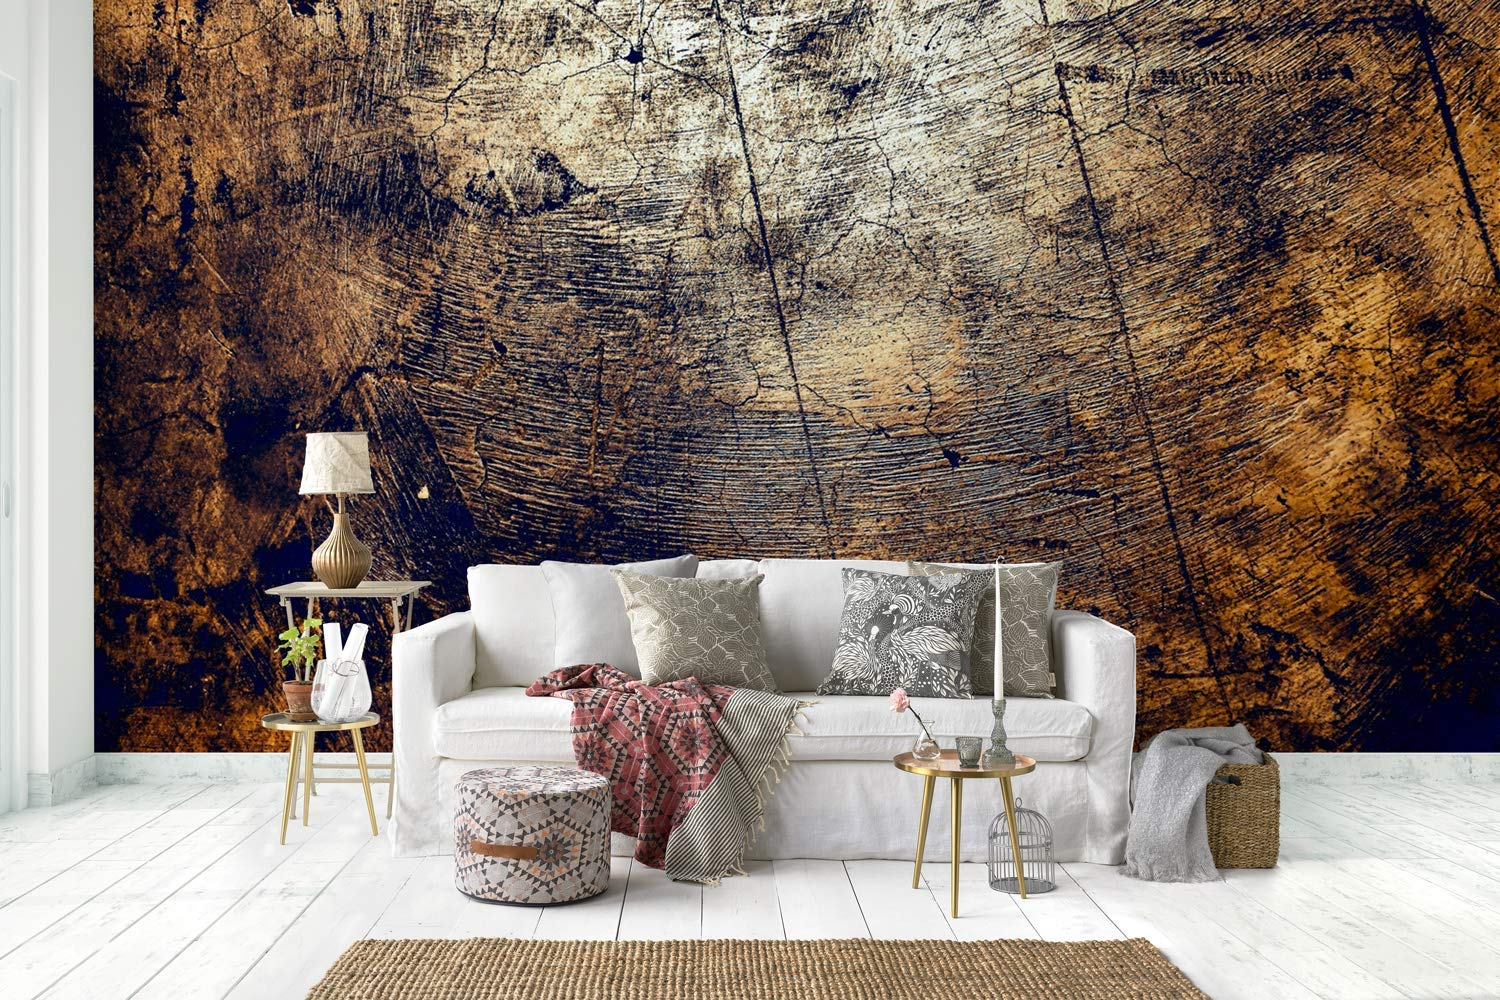 Amazon.com: Murwall Grunge Wallpaper Dark Texture Wall Mural Brown Pattern Wall Print Contemporary Home Decor Bedroom: Handmade